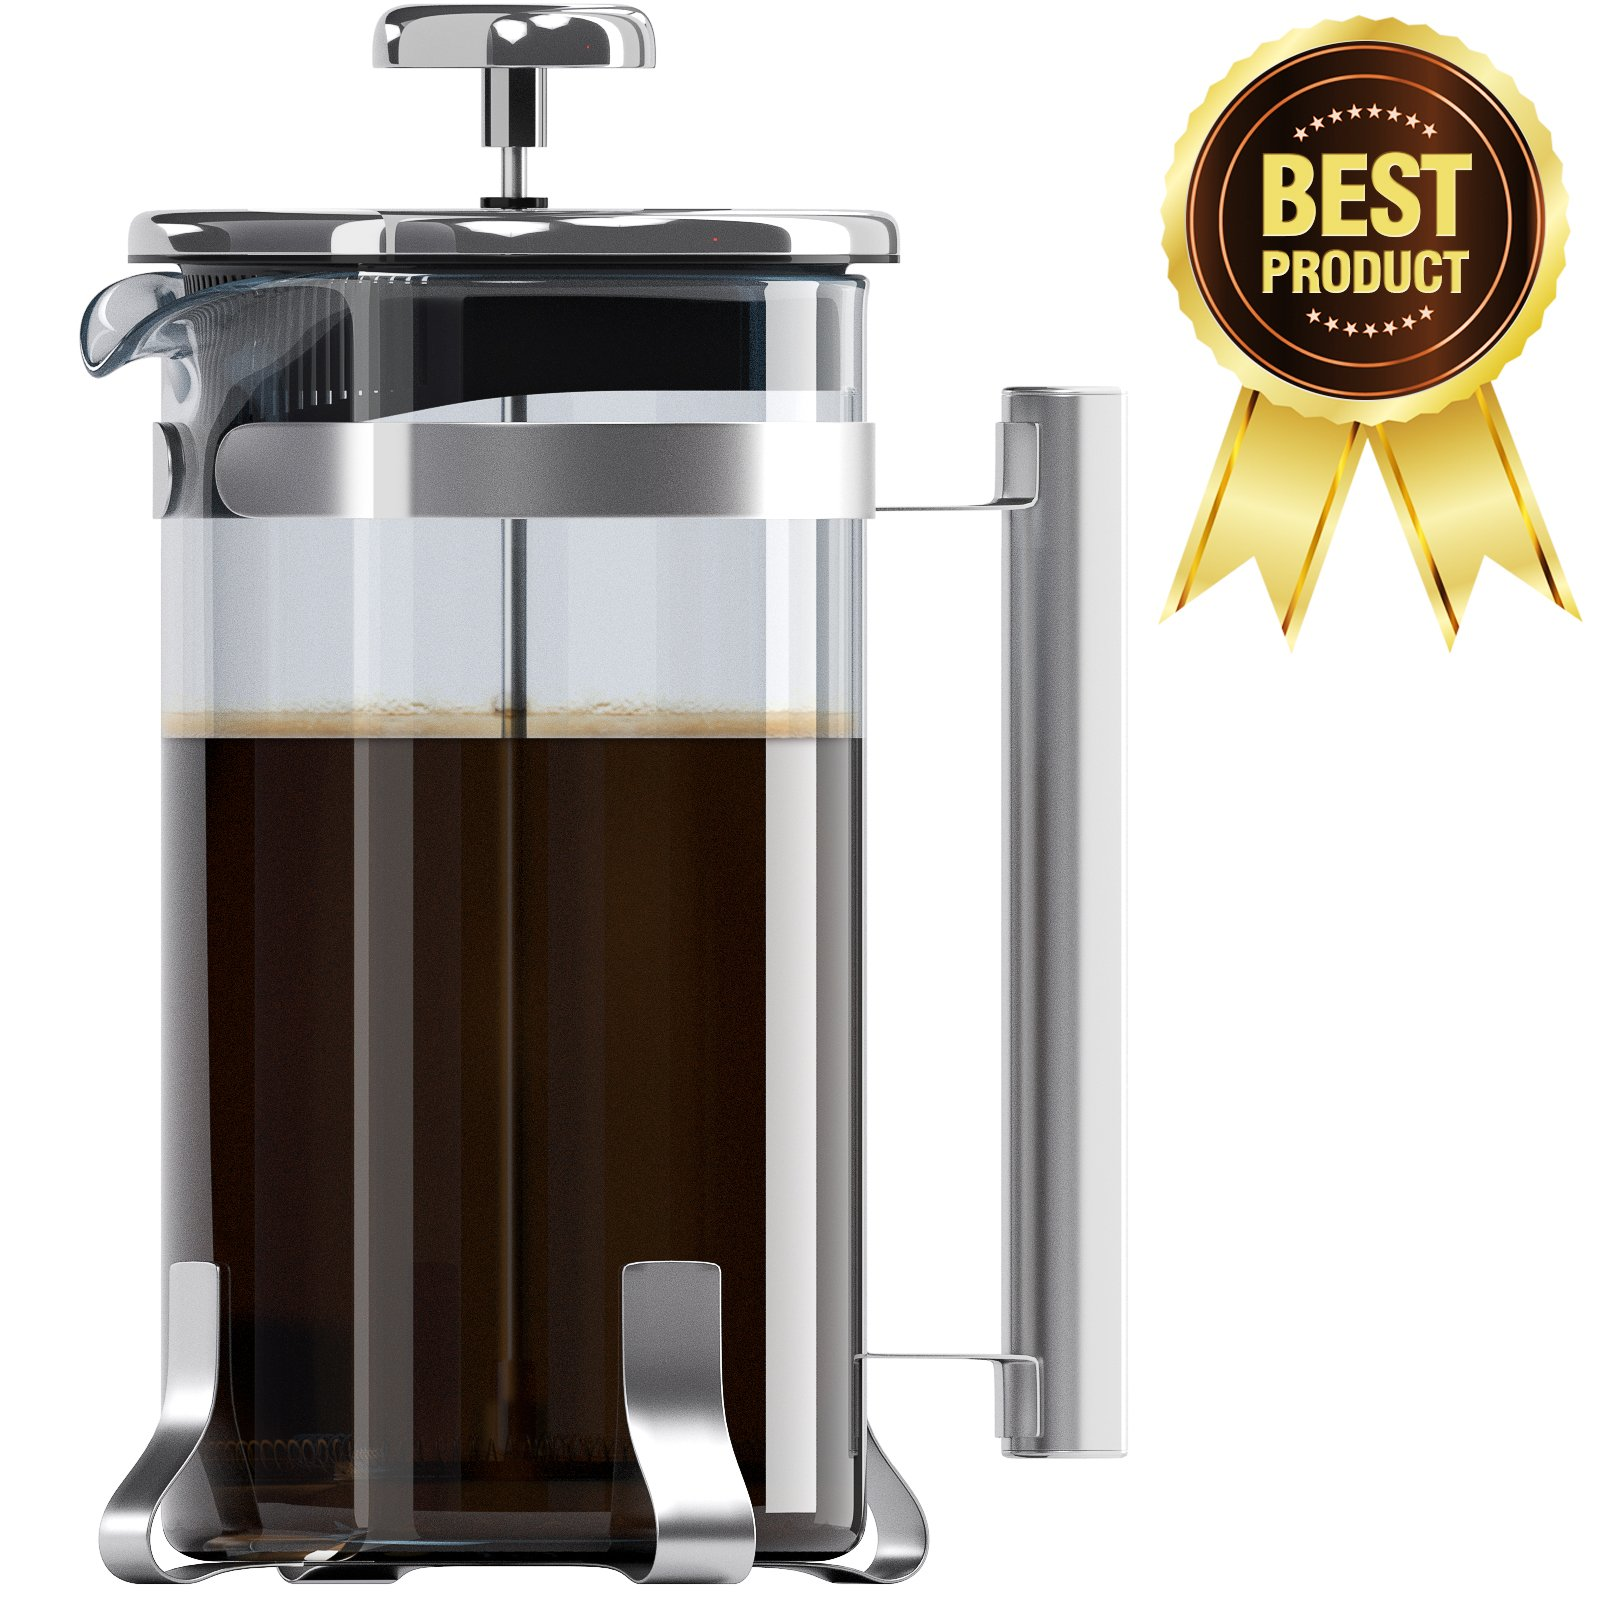 8 Cup French Press Coffee and Tea Maker- Borosilicate Glass Carafe- Stainless Steel Components- FDA Approved Manual Machine- Heat Resistant Handle- Dishwasher Safe- Best for Fast and Hot Brew (34oz)